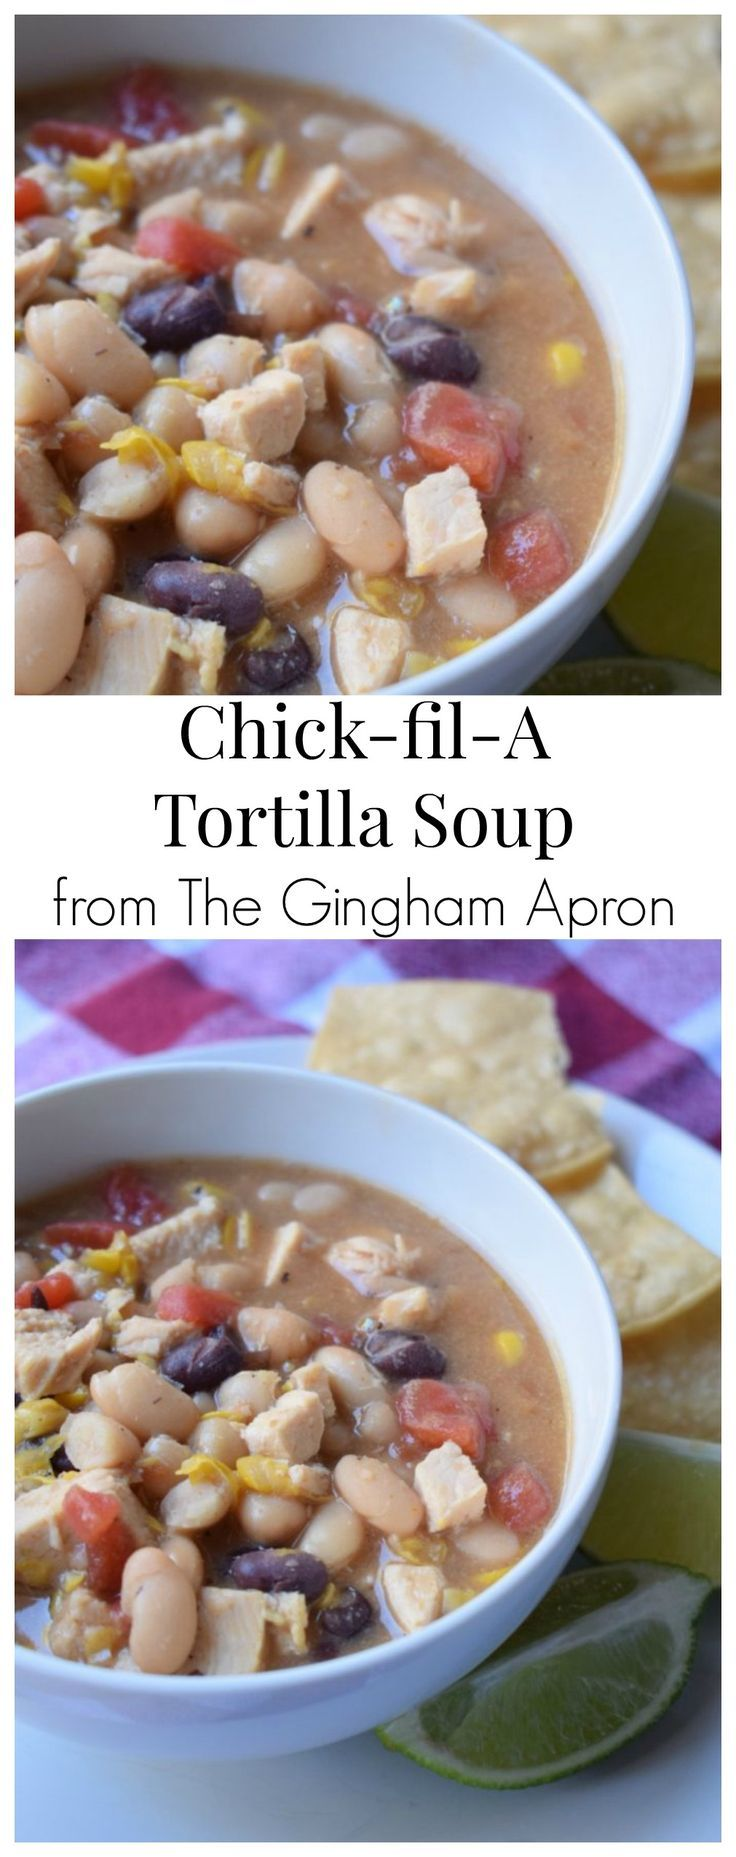 Copy cat Chick-fil-A tortilla soup- This soup tastes exactly like the restaurant's. Best of all, it is super healthy! So delicious! #chickfila #chickensoup #copycat